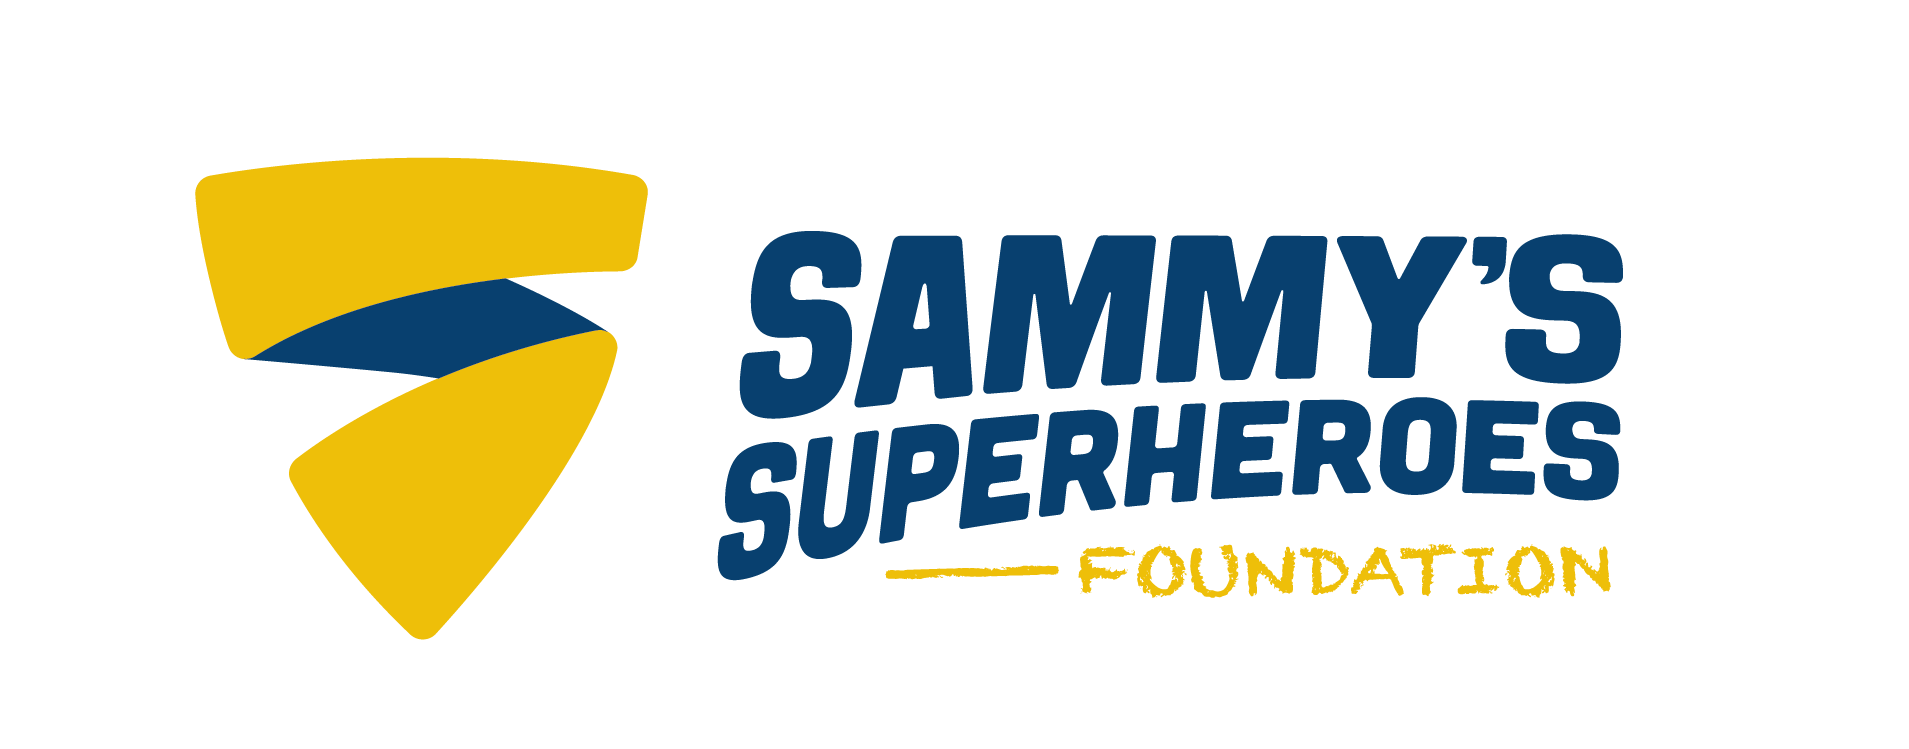 Sammy's Superheroes Foundation Unveils New Look